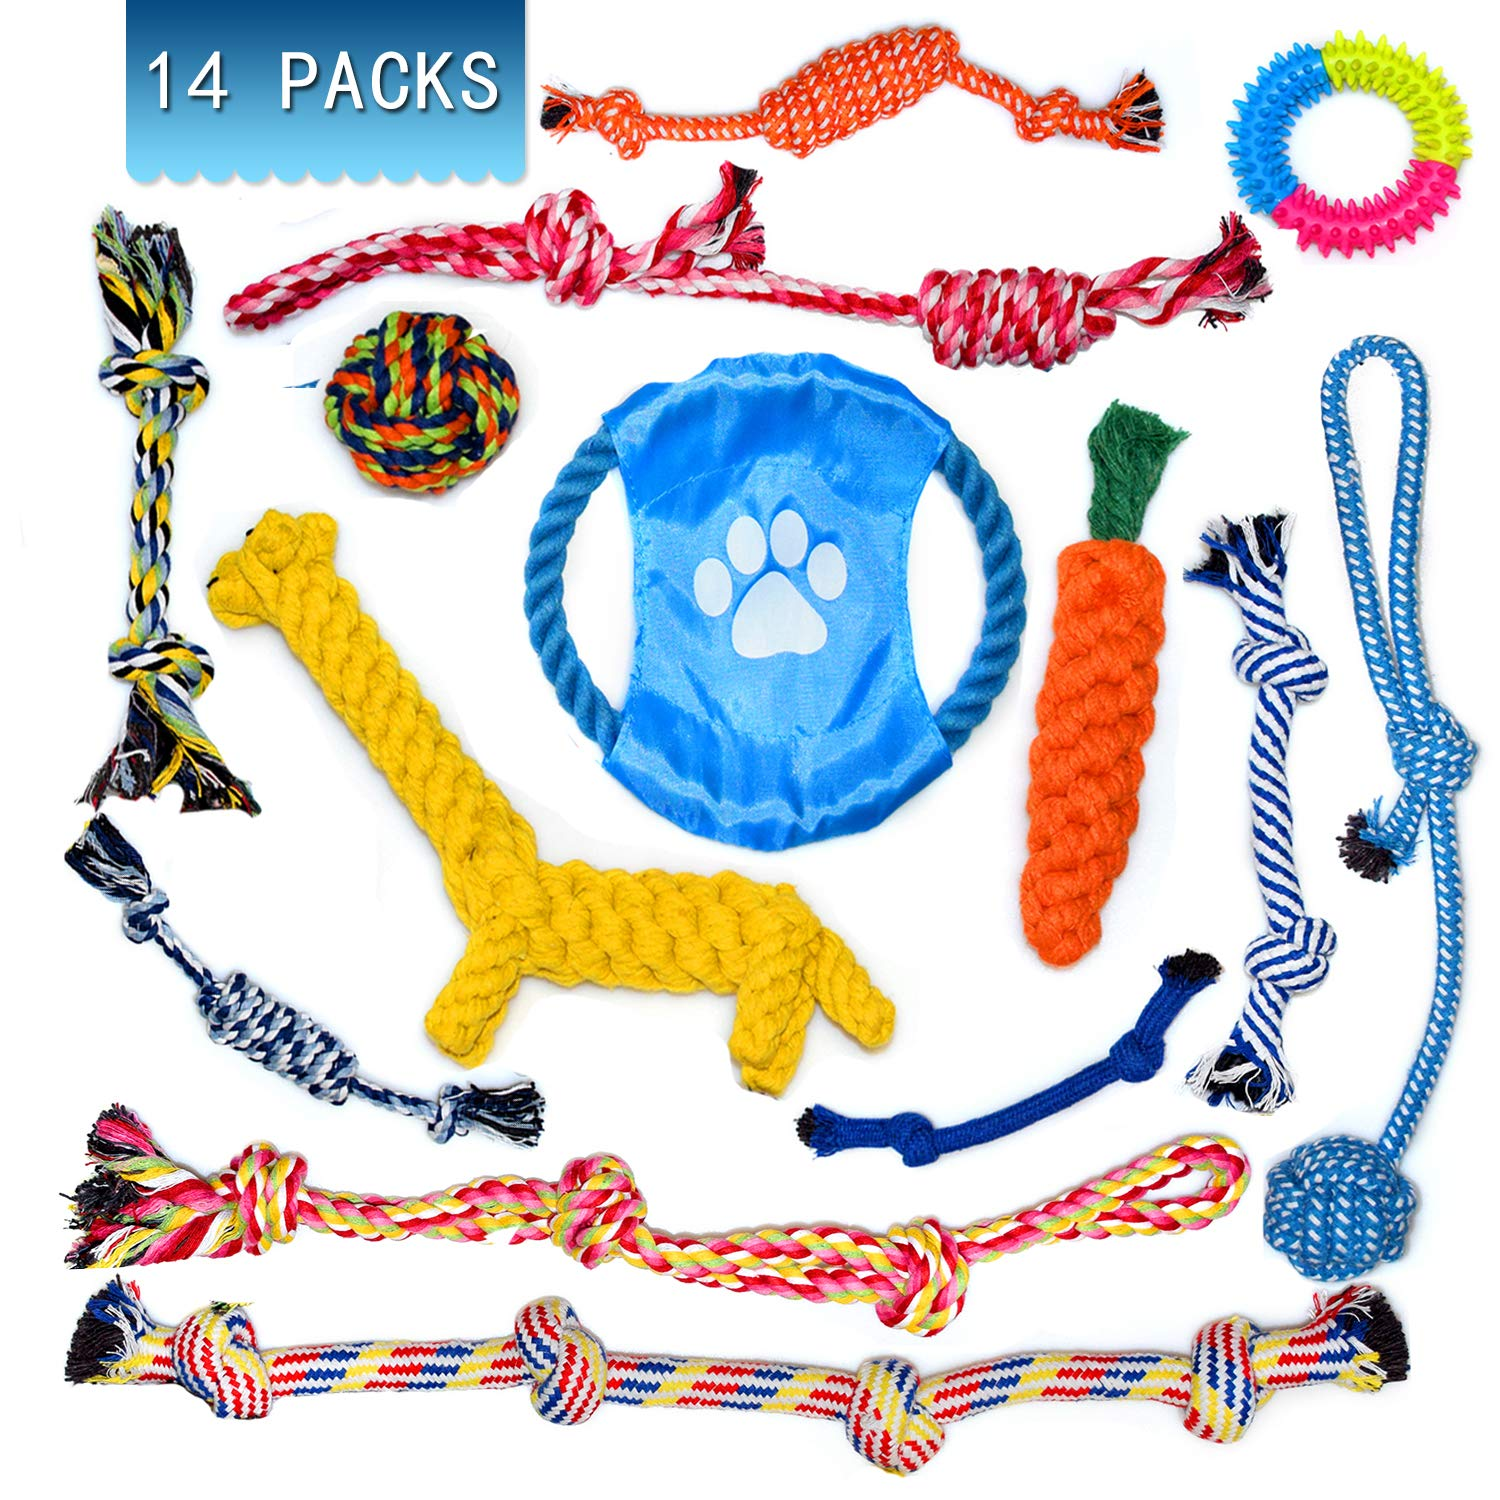 Puppy Chew Toys - 14 PCS Dog Rope Toys Set, Puppy Chew Durable Teething Cotton Toys Teeth Cleaning for Puppy Dogs(14 Pack)